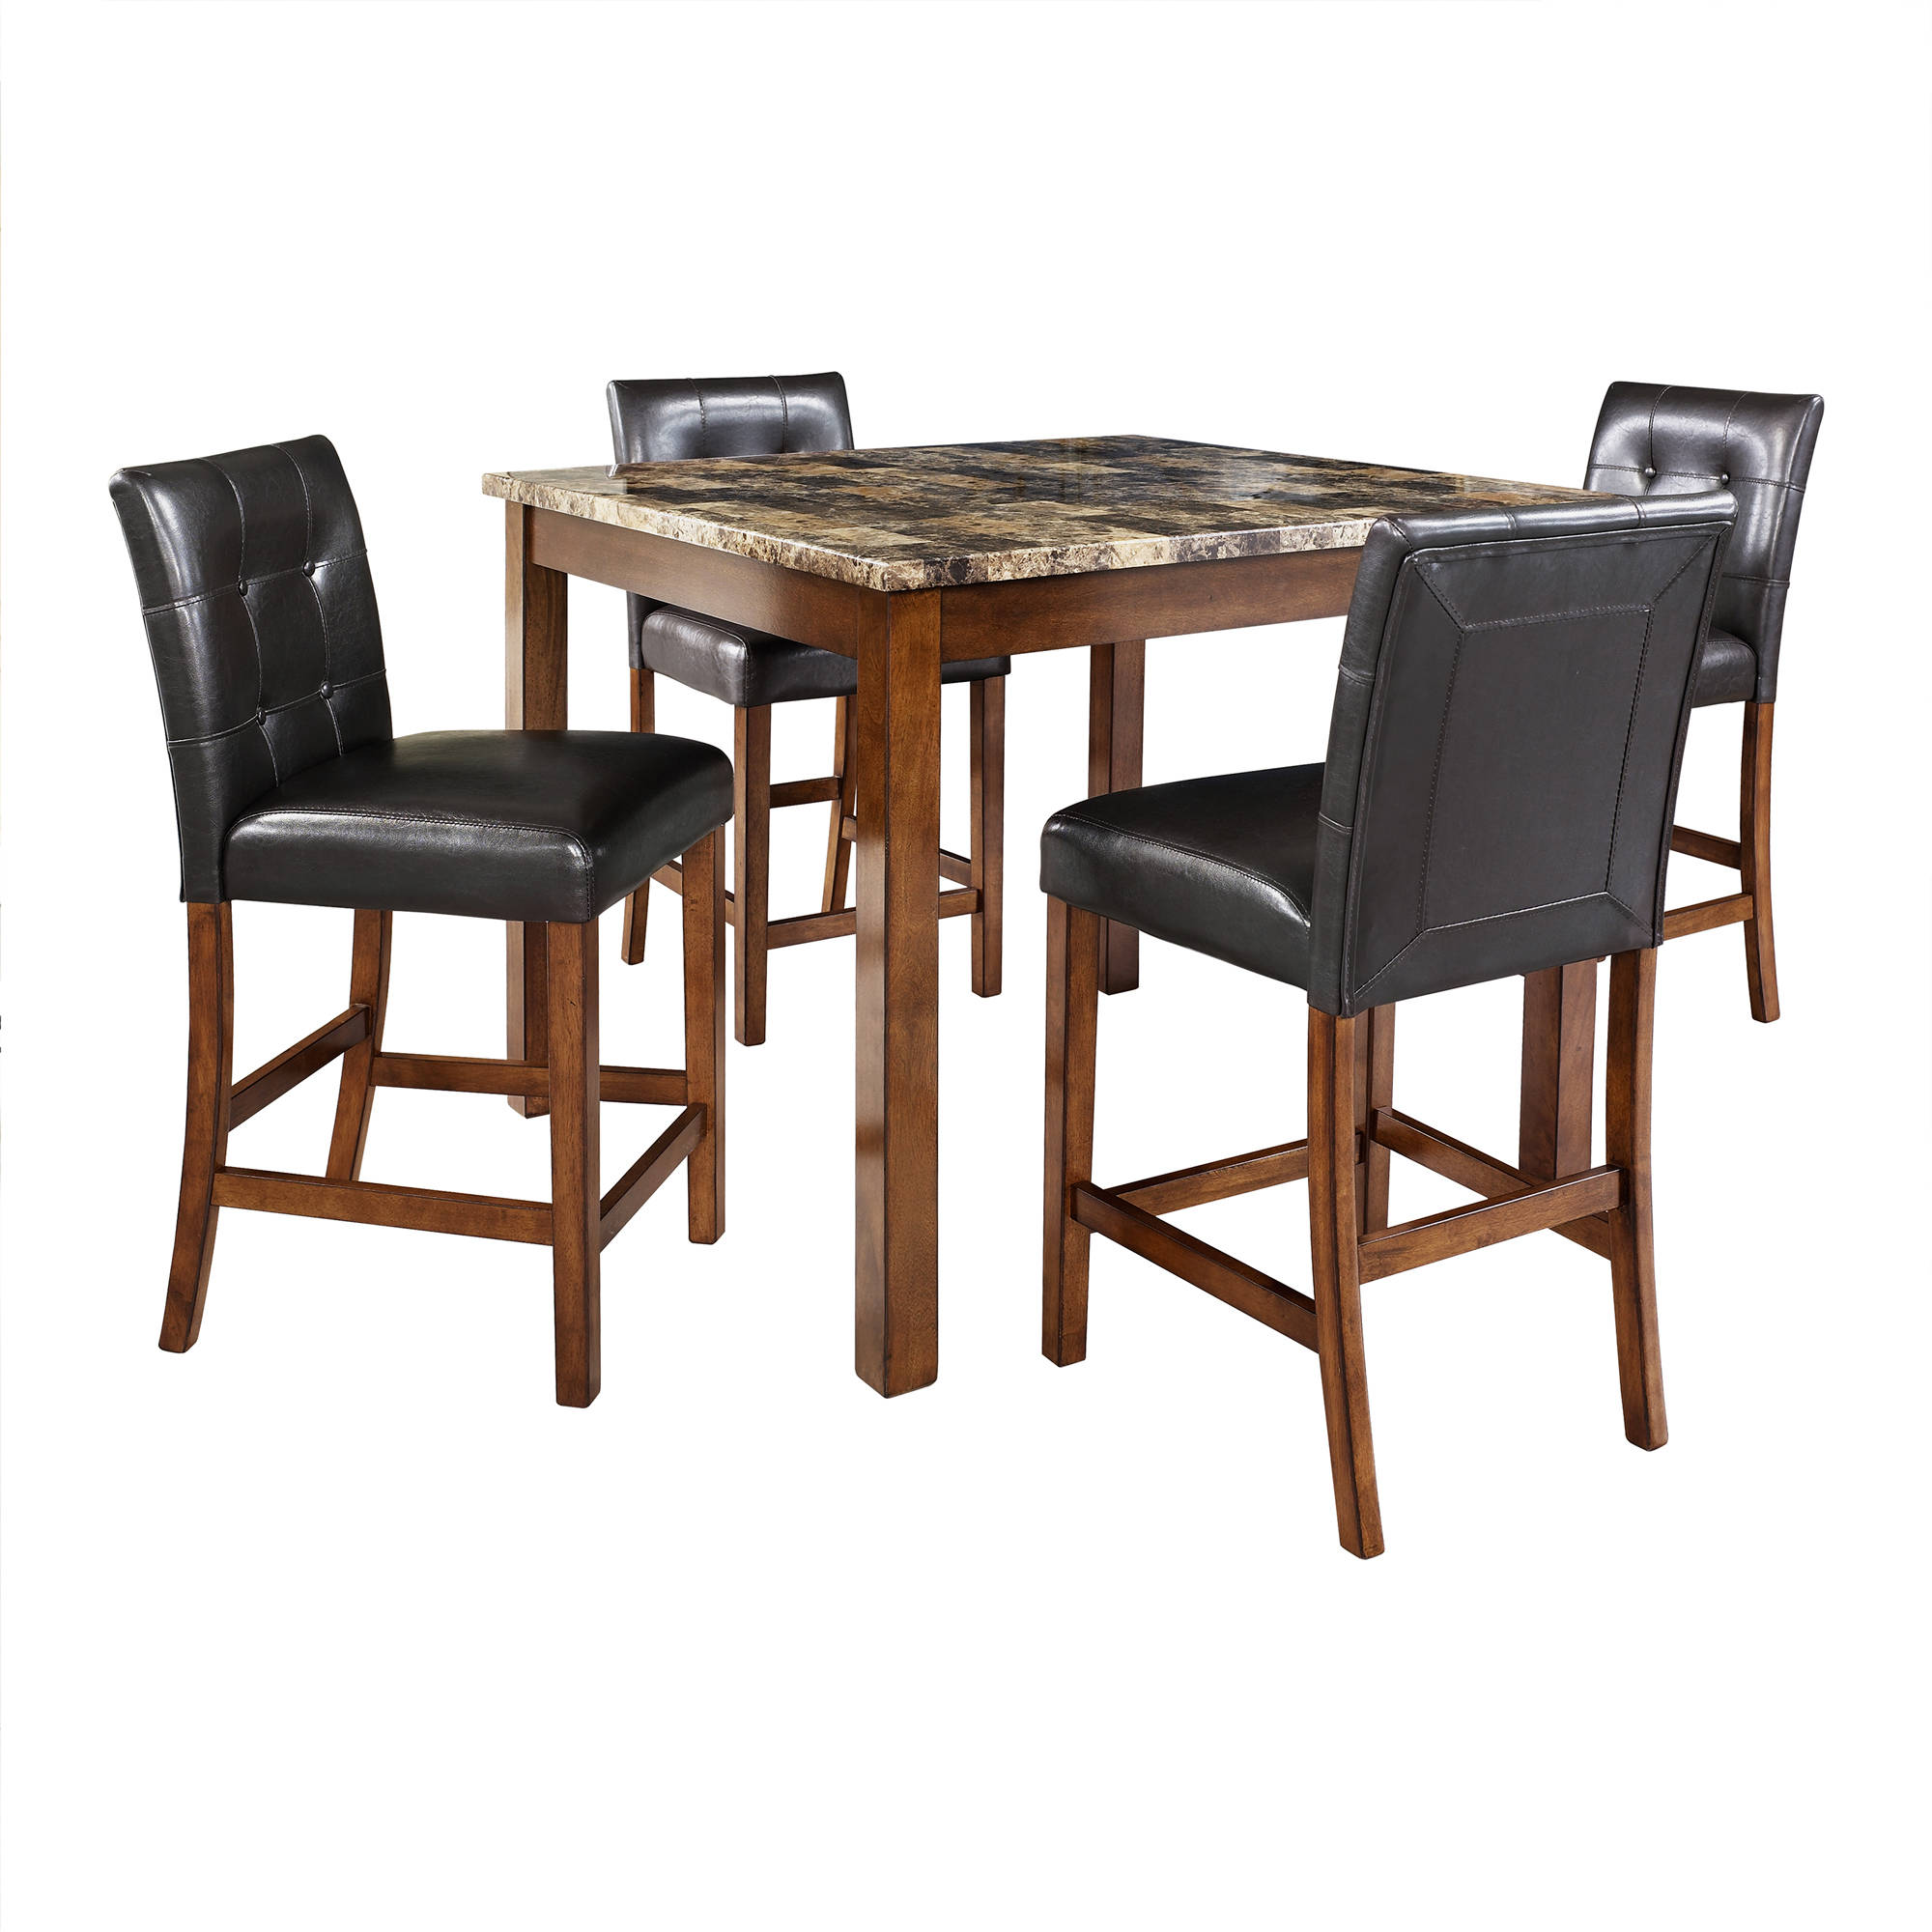 Lovely Dorel Living Andover 5 Piece Faux Marble Counter Height Dining Set,  Multiple Colors   Walmart.com